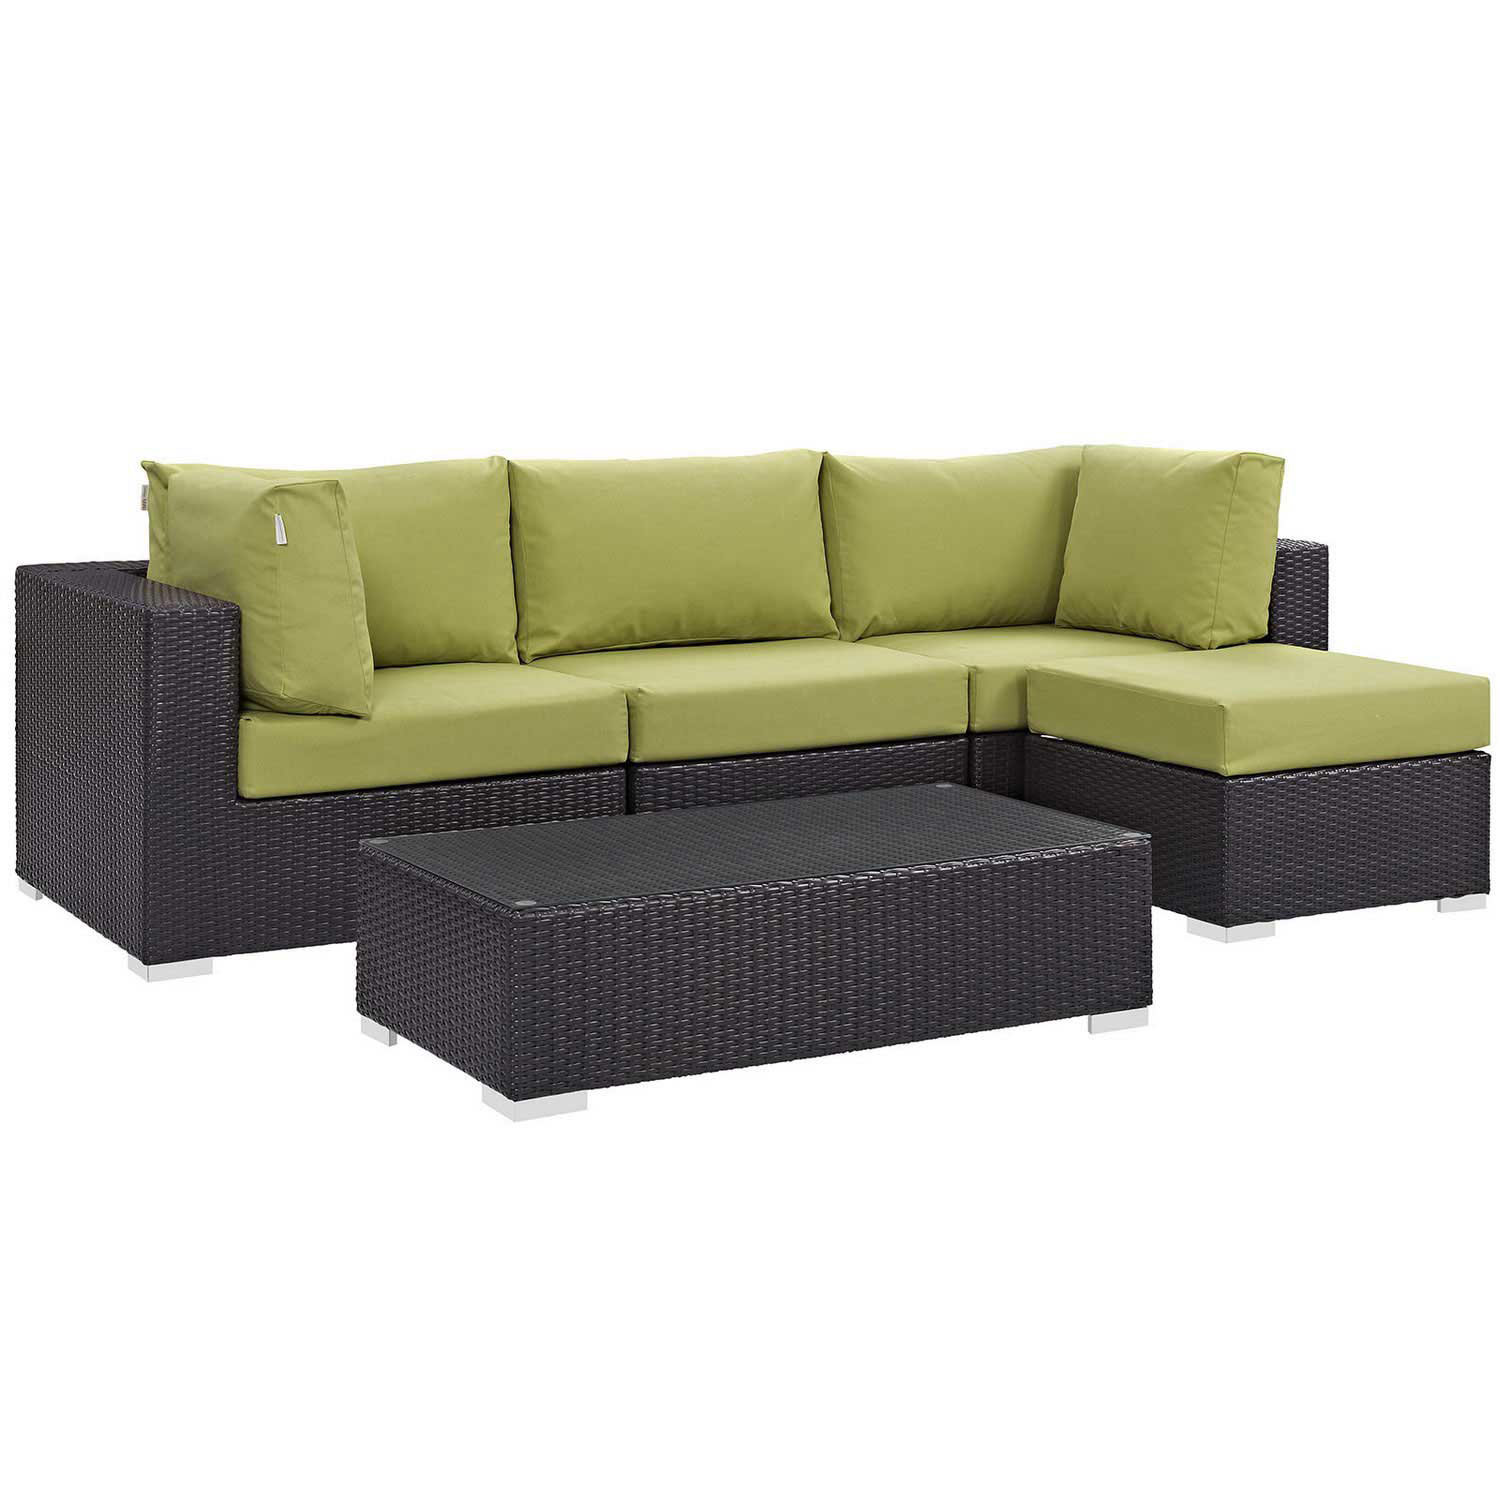 Modway Convene 5 Piece Outdoor Patio Sectional Set - Espresso Peridot